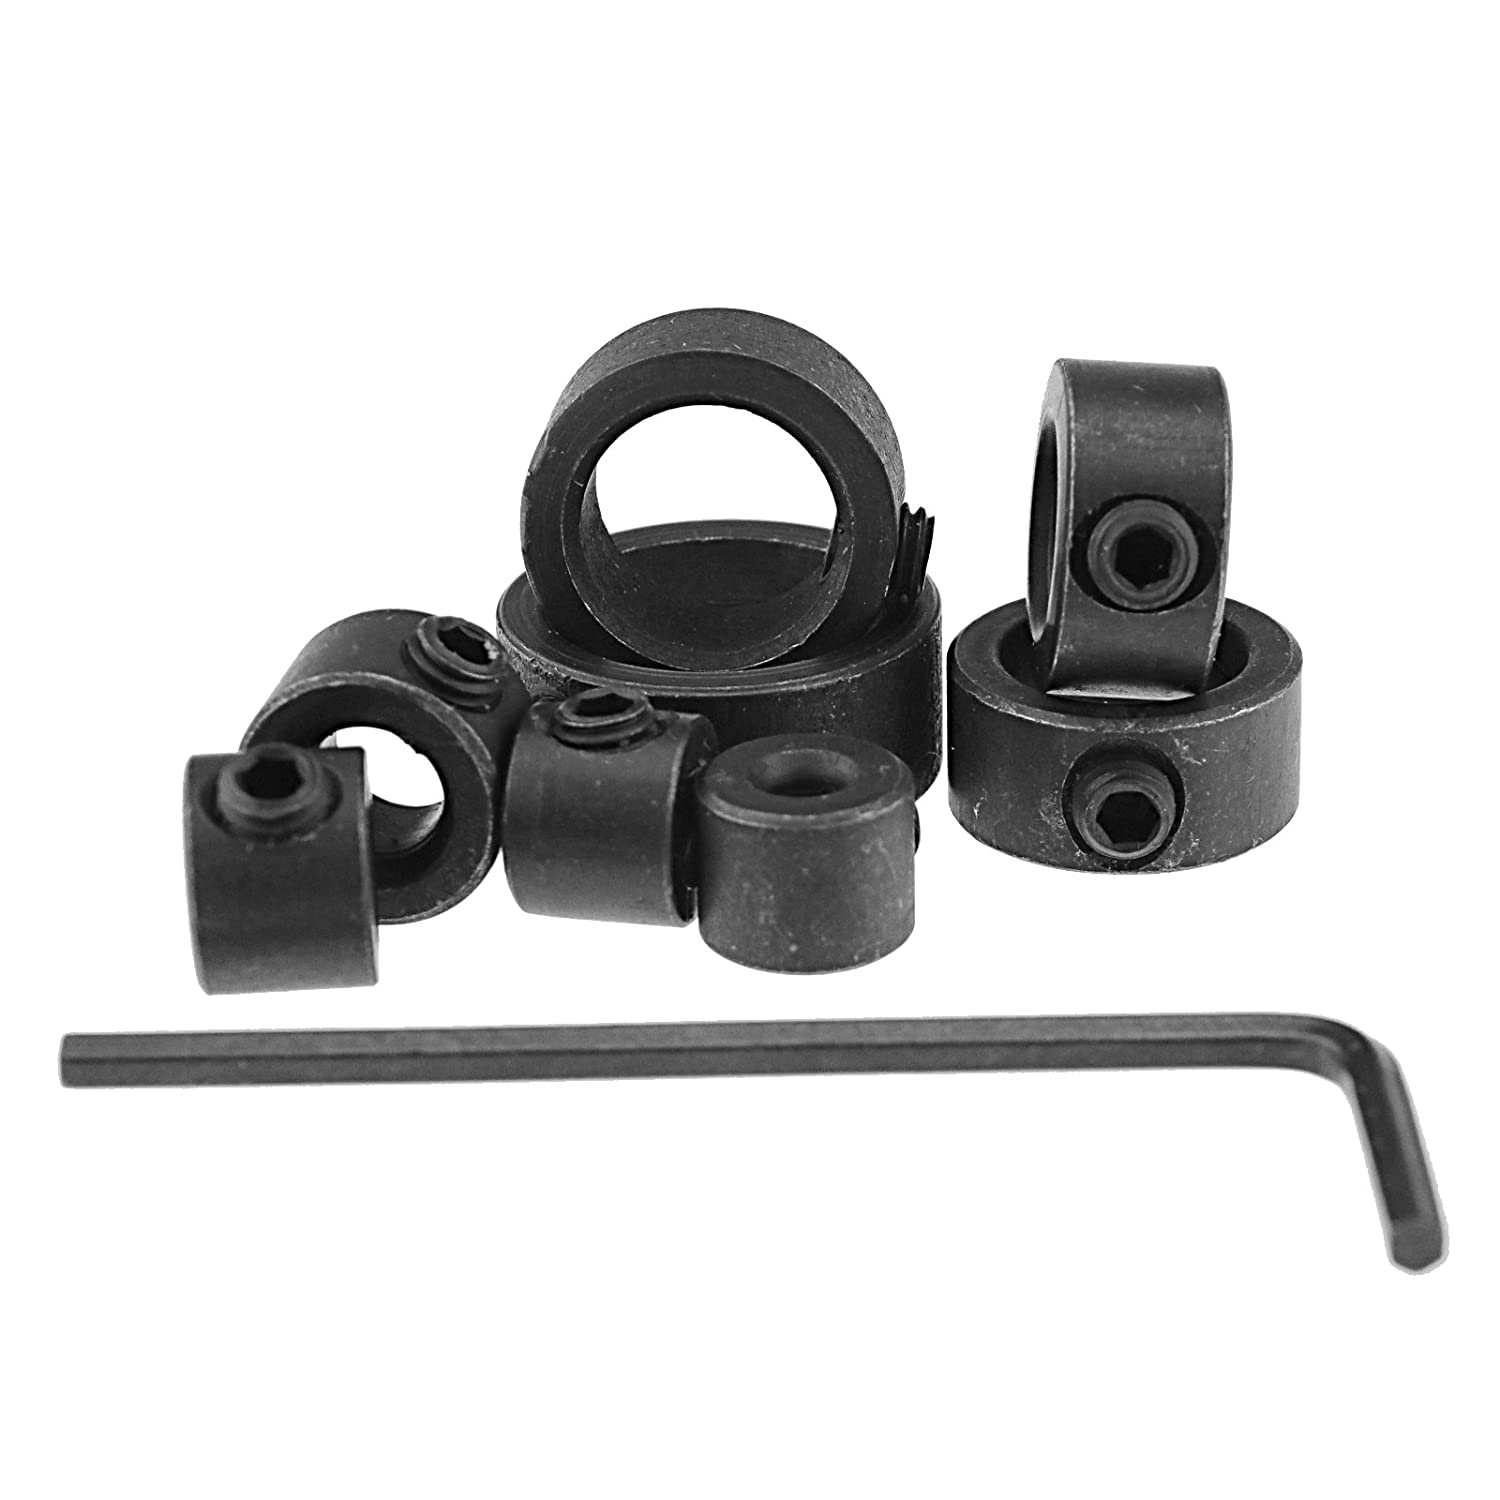 Micro Trader 8Pcs Drill Depth Stop Collars Ring Dowel Shaft Chuck Hex Wrench Woodworking Tools Carbon Steel Black